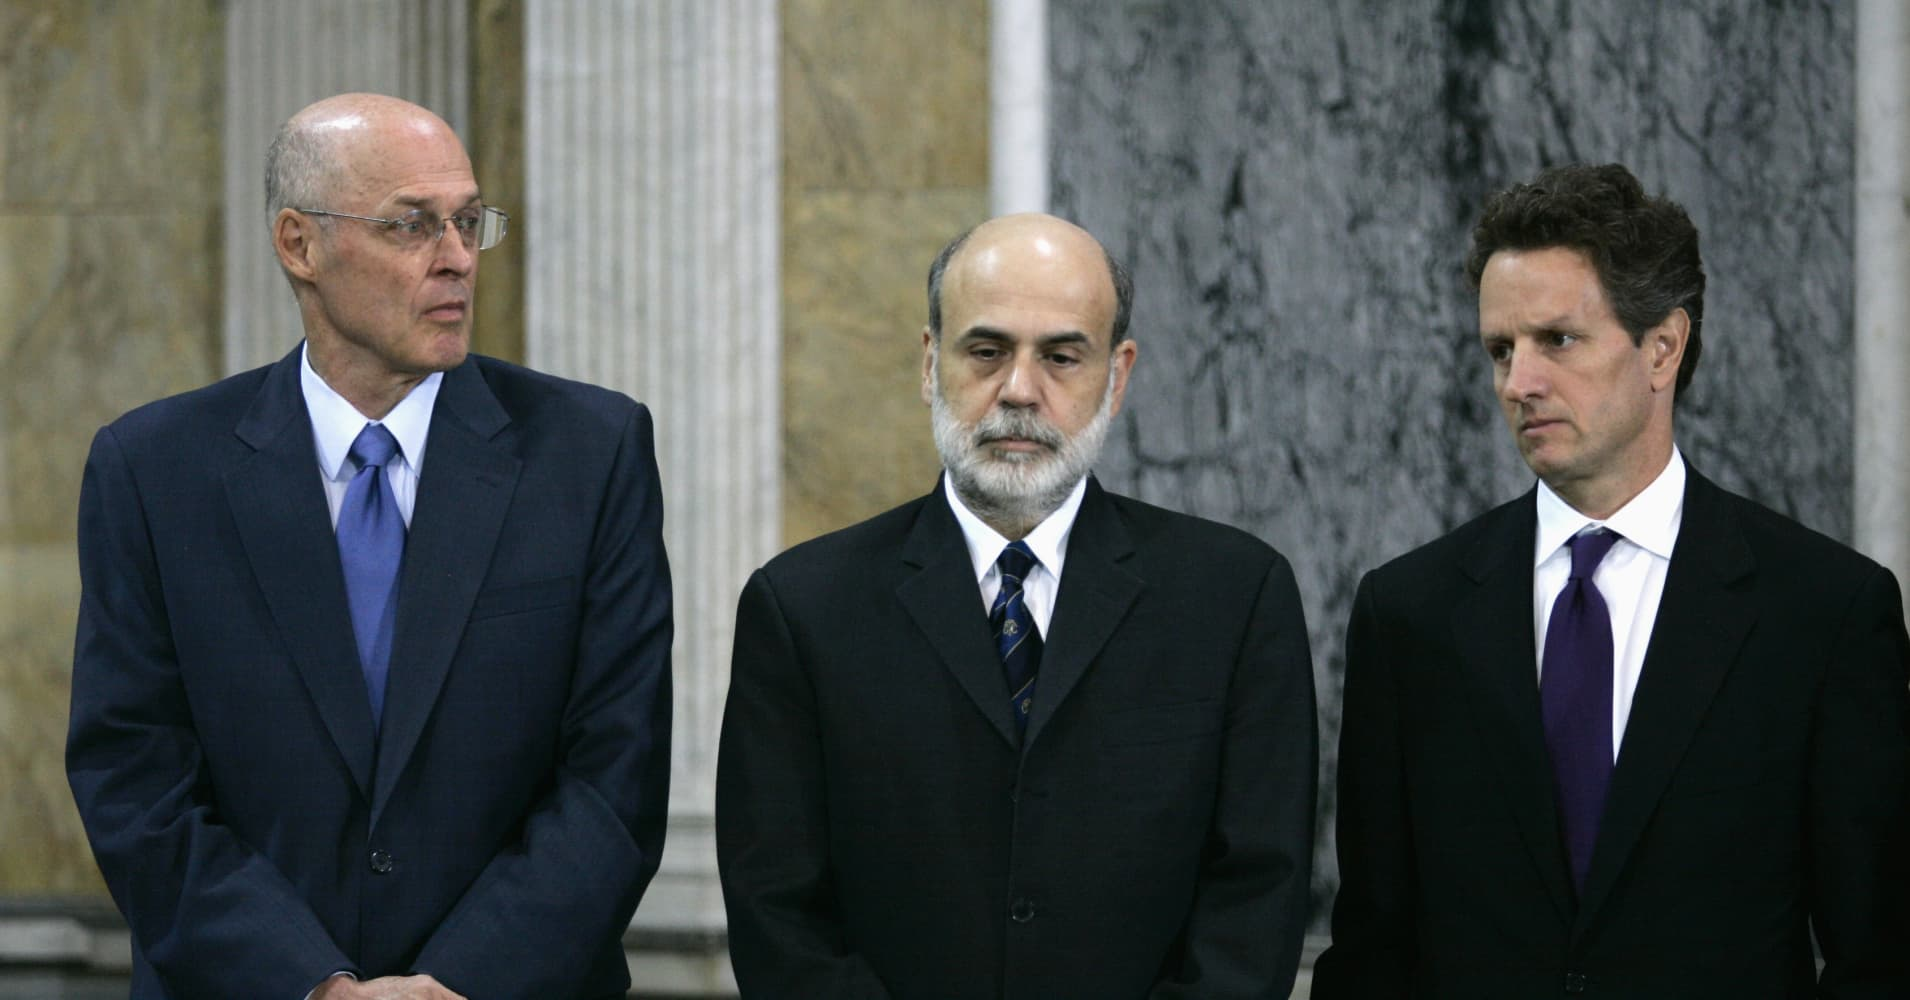 America may not have the tools to counter the next financial crisis, warn Bernanke, Geithner and Paulson